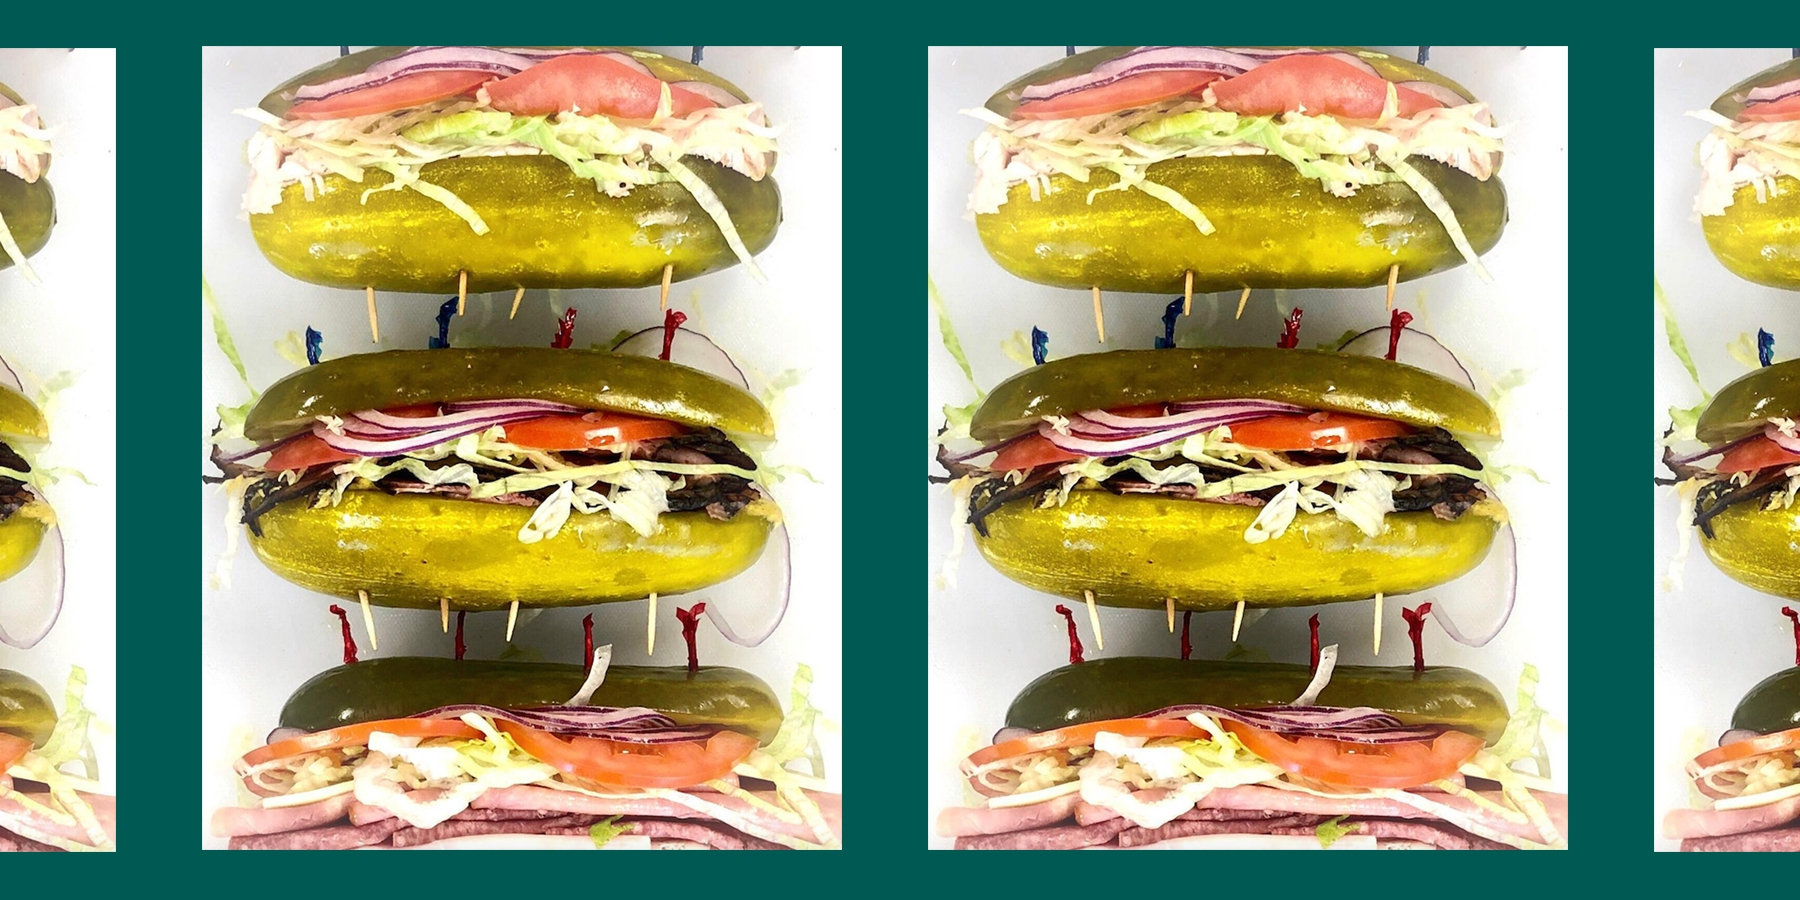 These Sandwiches Use Pickles Instead of Bread and We're in Love